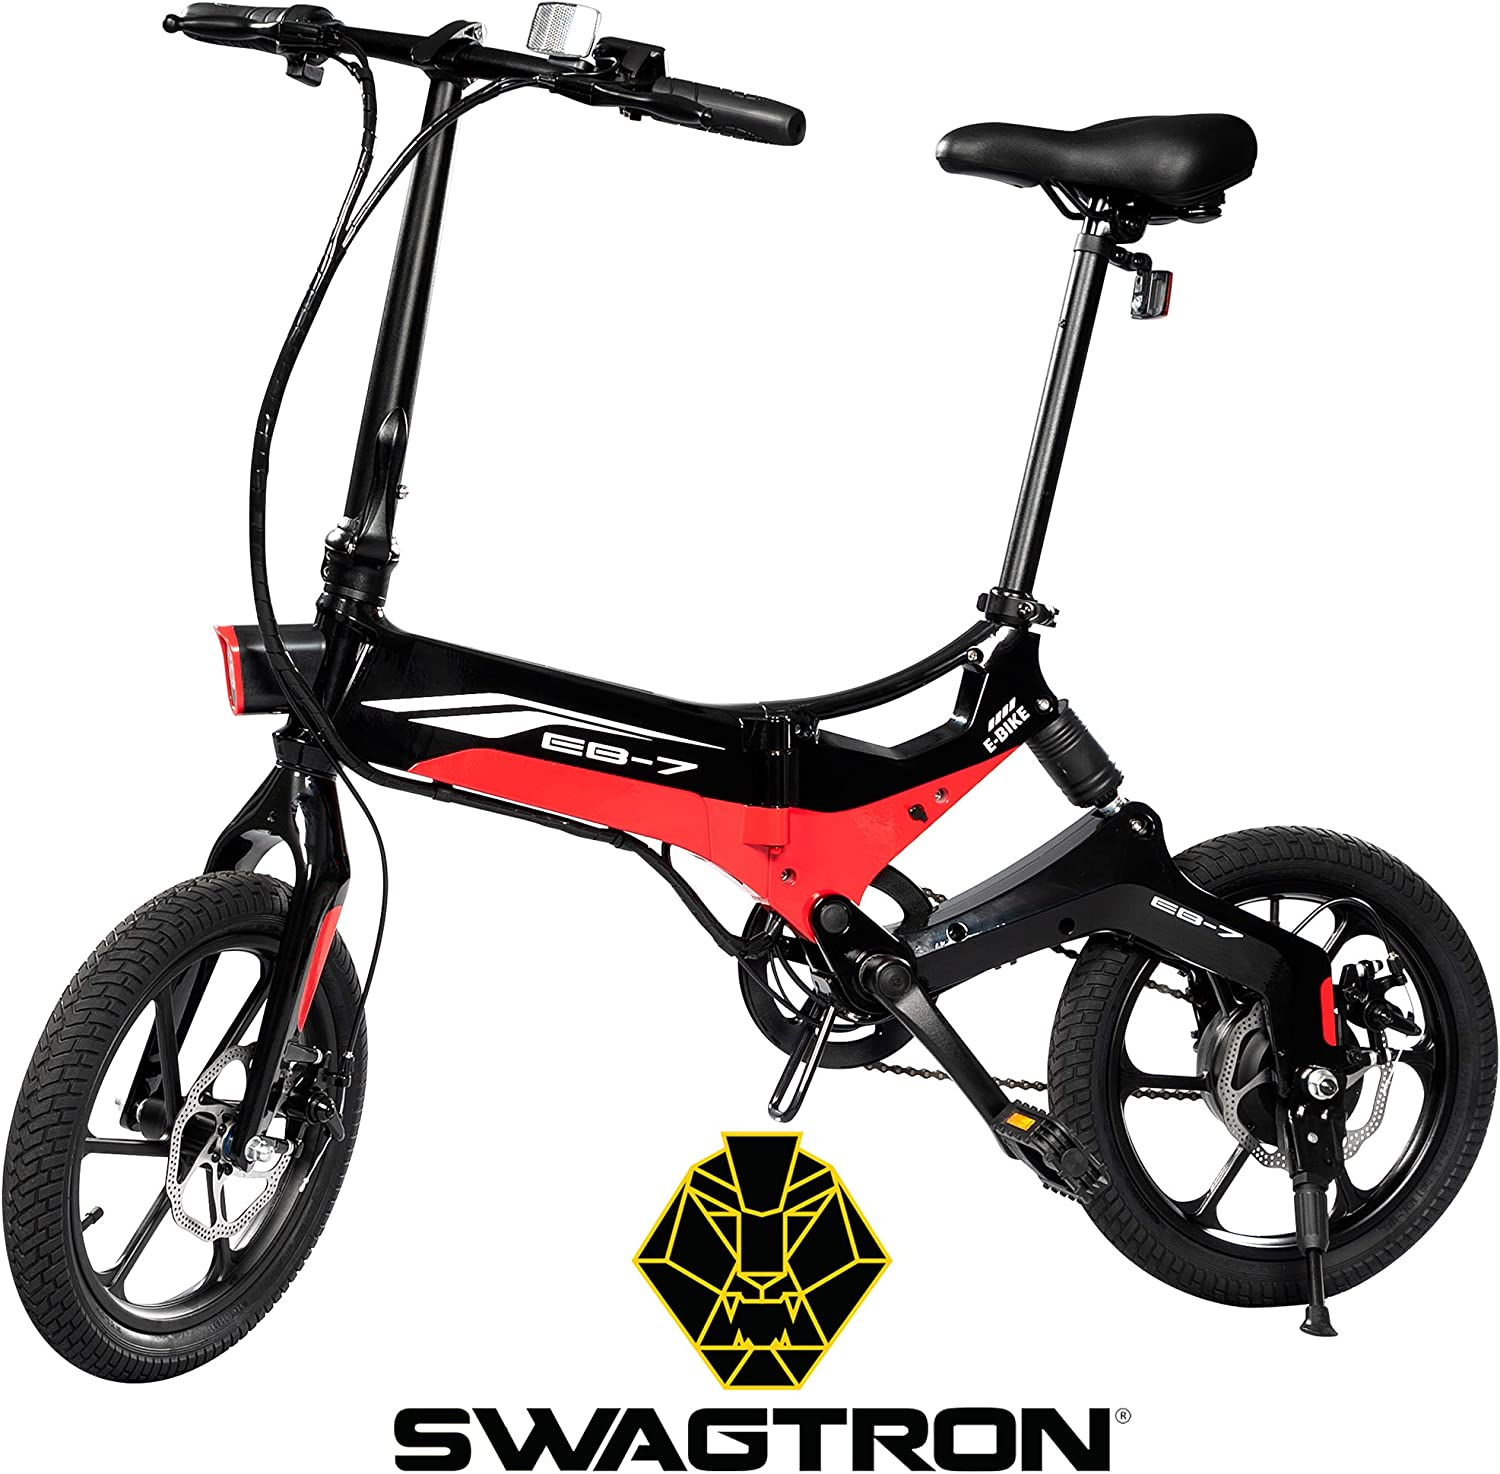 best electric bike under 1000: Swagtron Swagcycle EB-7 Elite Folding Electric Bike